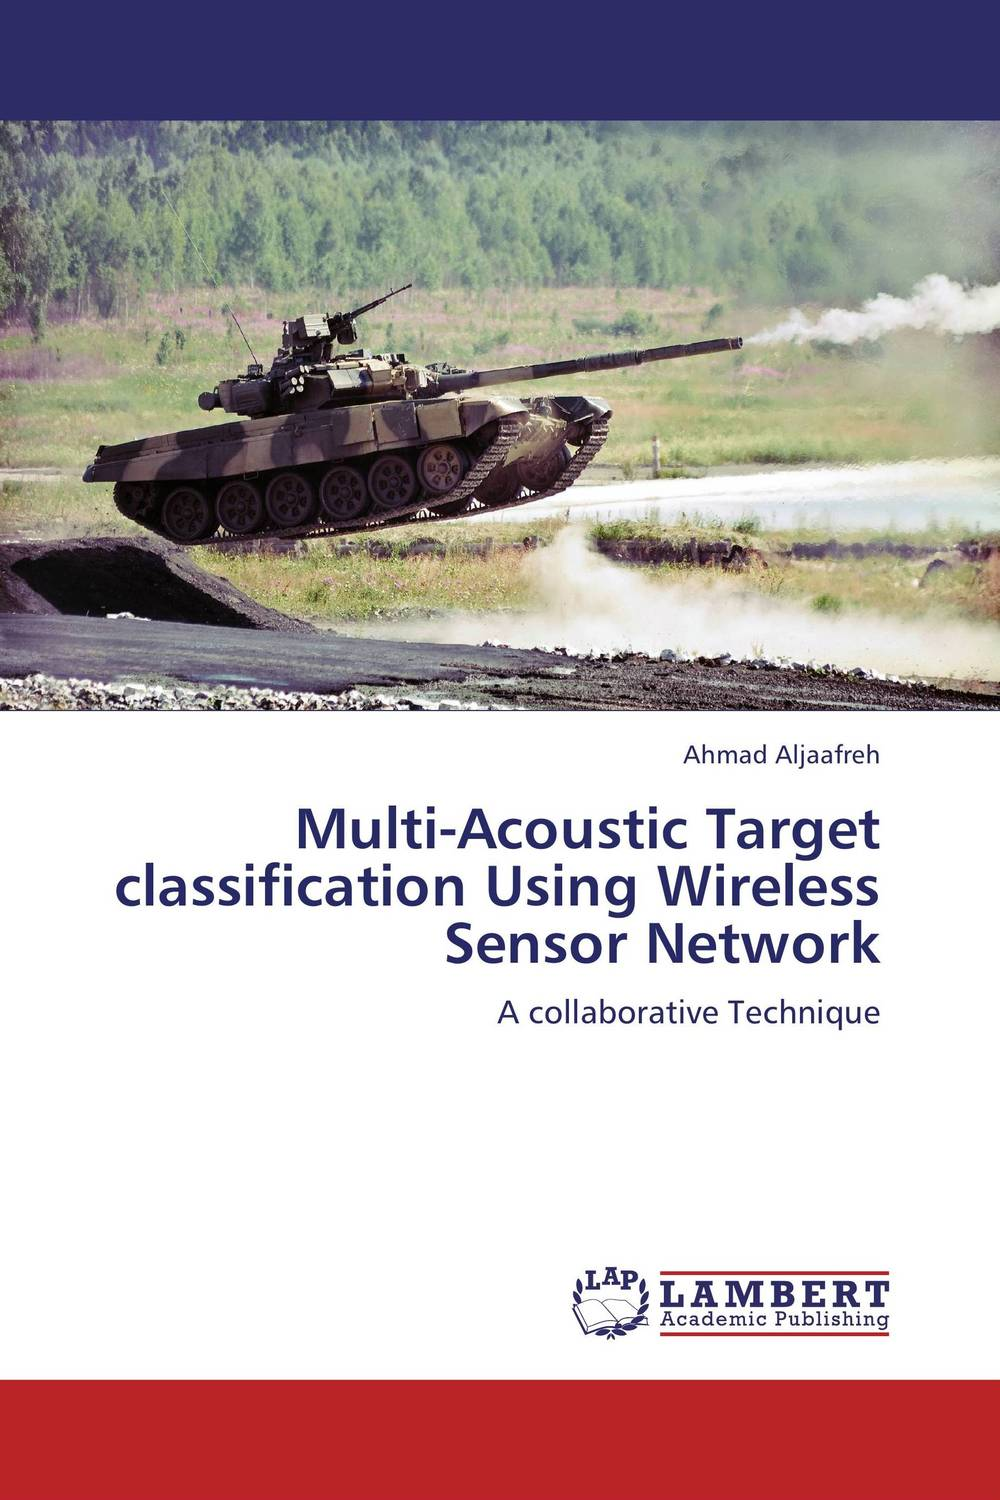 Multi-Acoustic Target classification Using Wireless Sensor Network